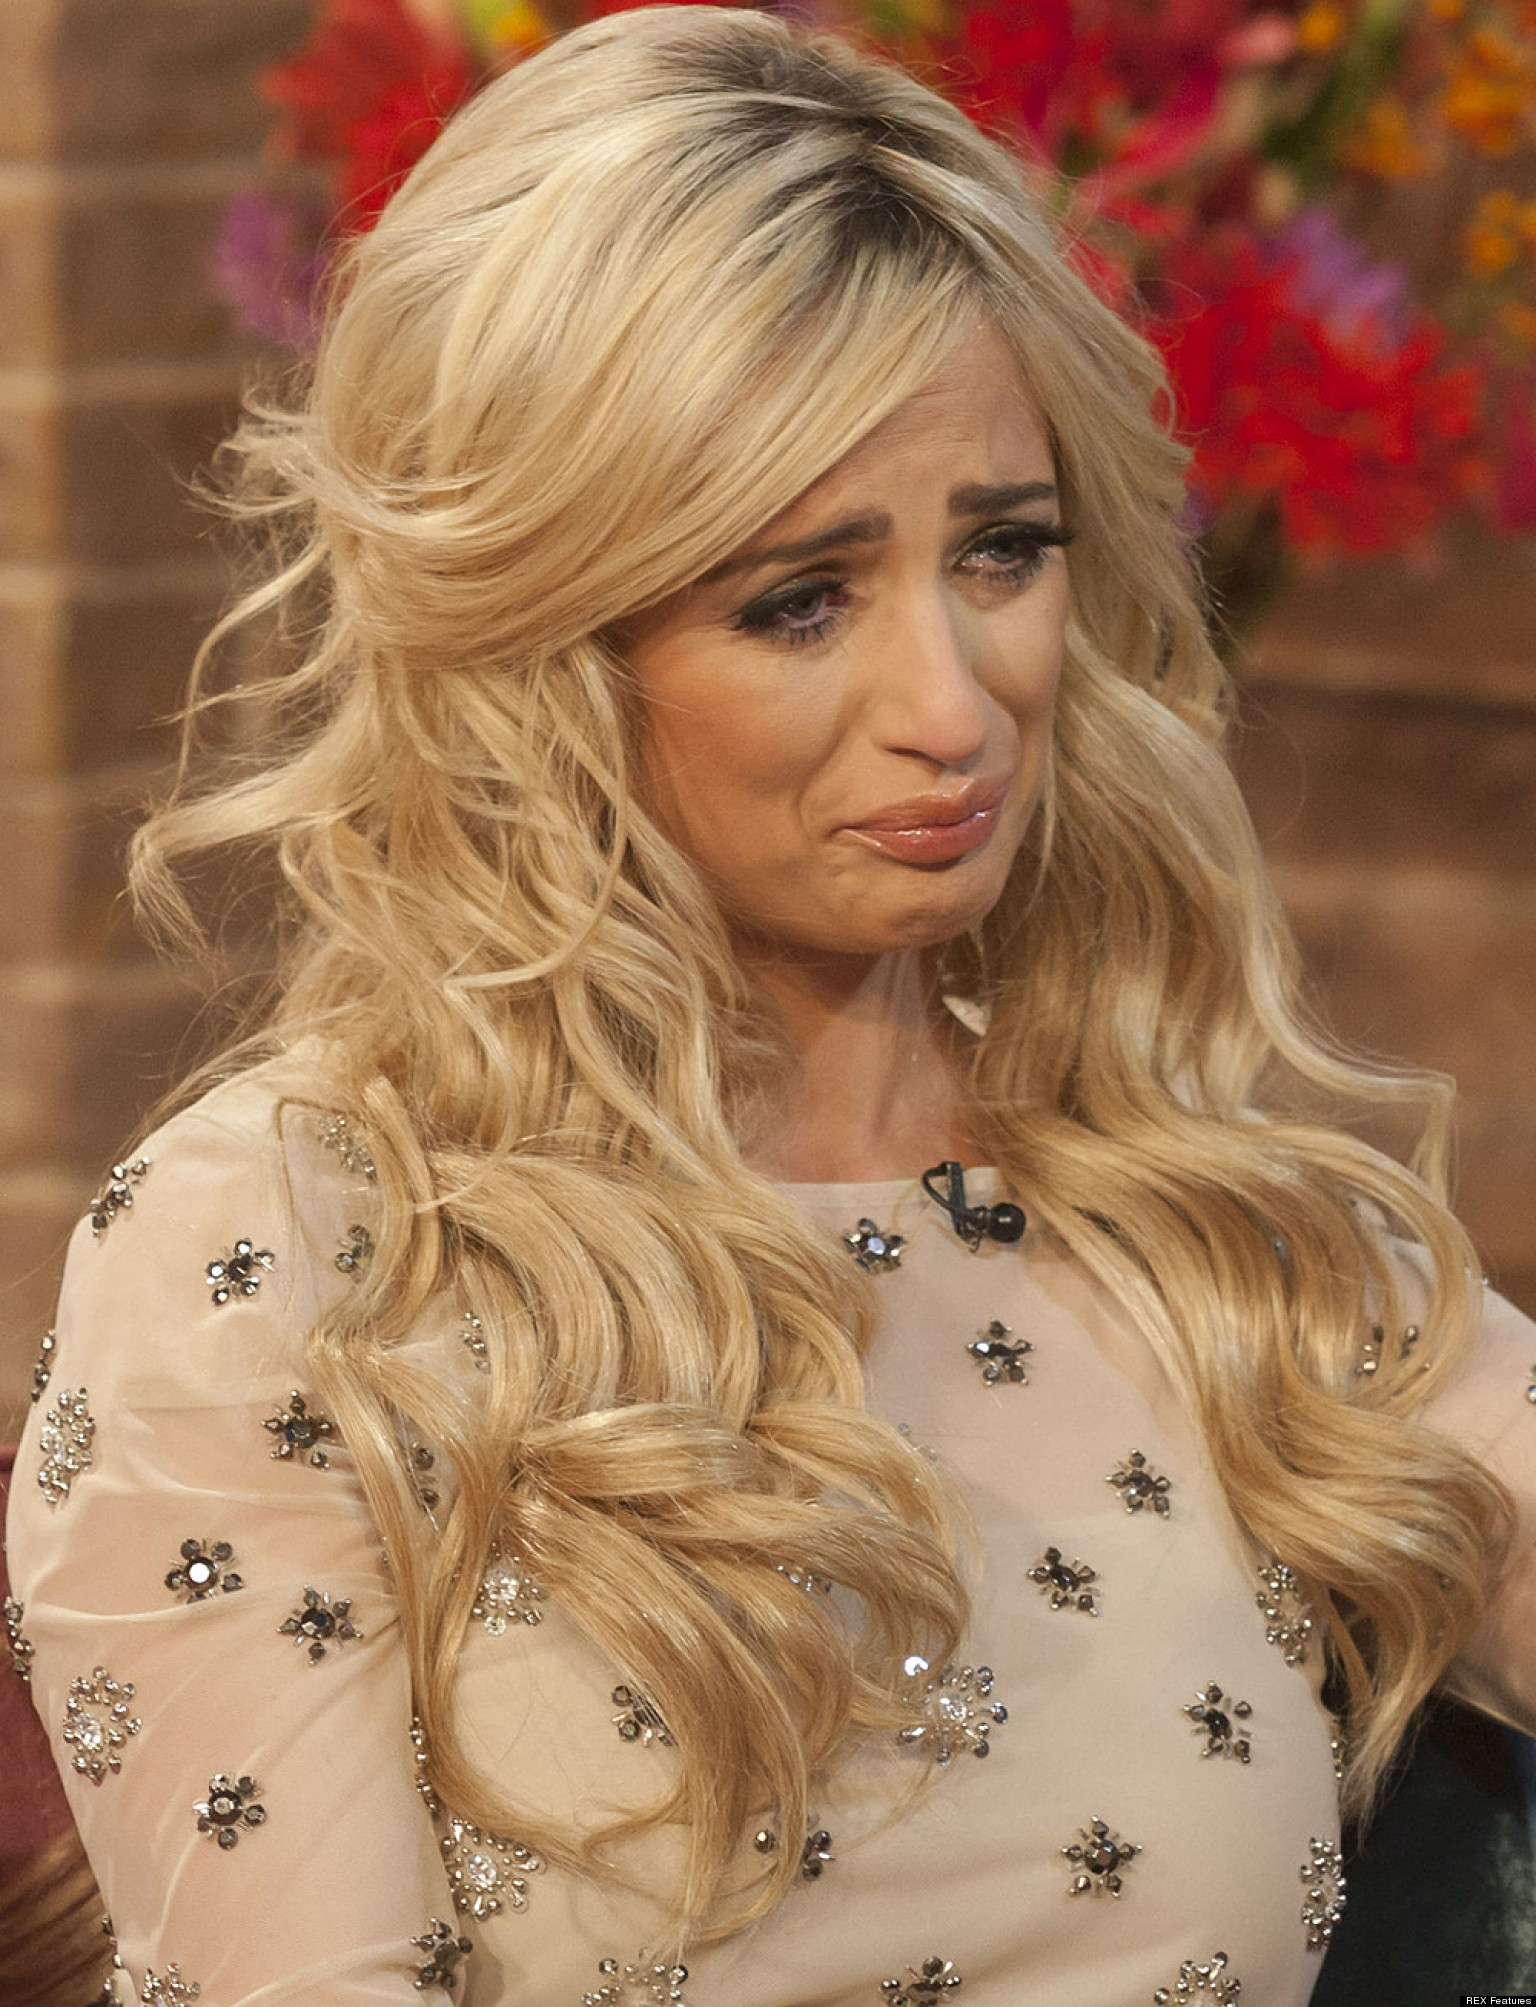 Chantelle Houghton Opens Up About Her Split With Alex Reid On This Morning... Says She's Been 'To Hell And Back' - o-CHANTELLE-HOUGHTON-facebook